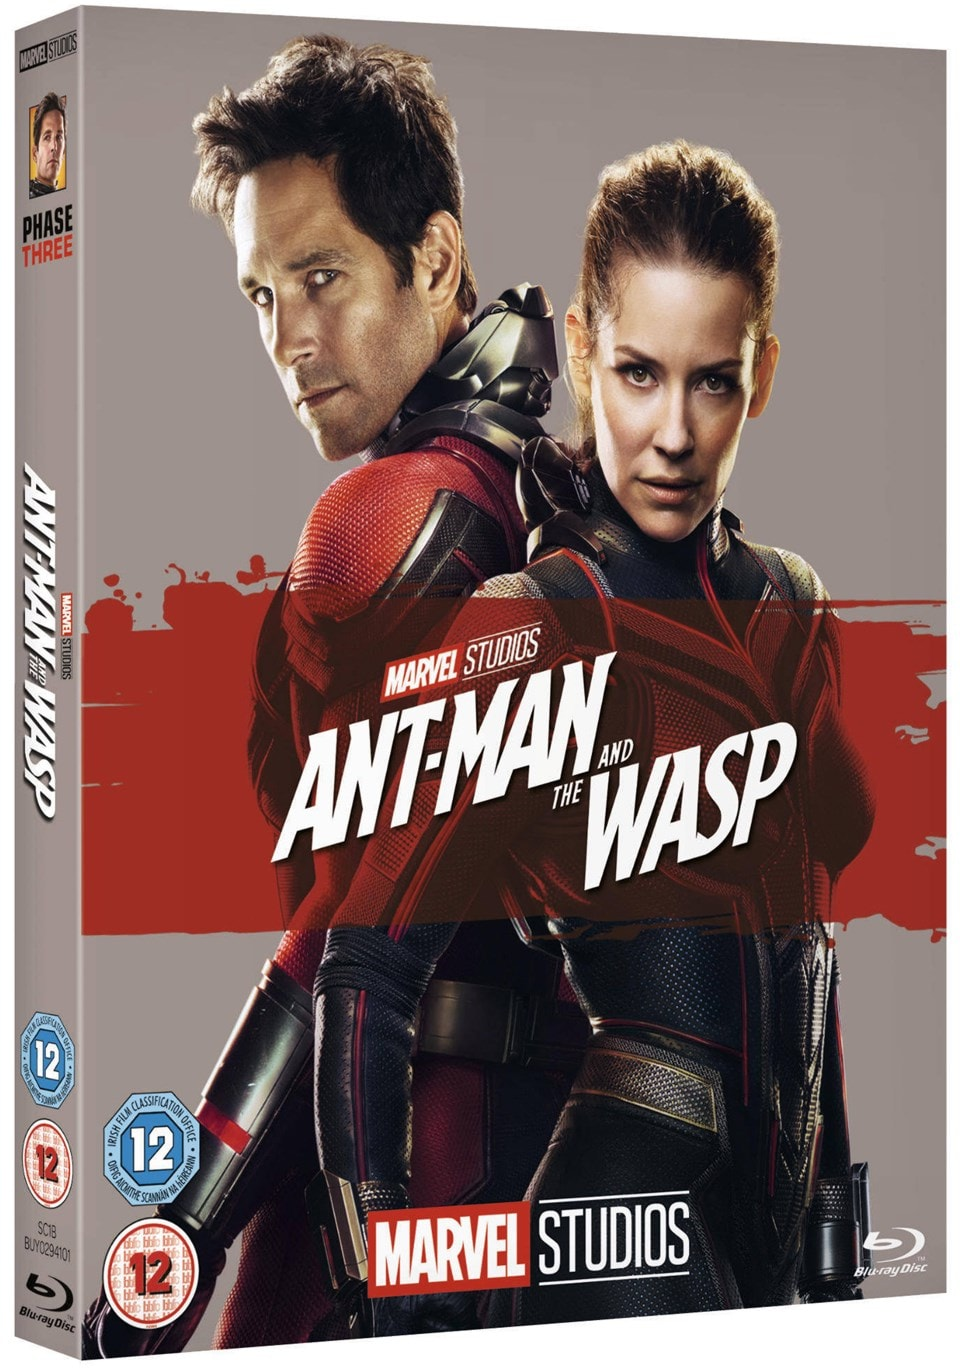 Ant-Man and the Wasp - 4